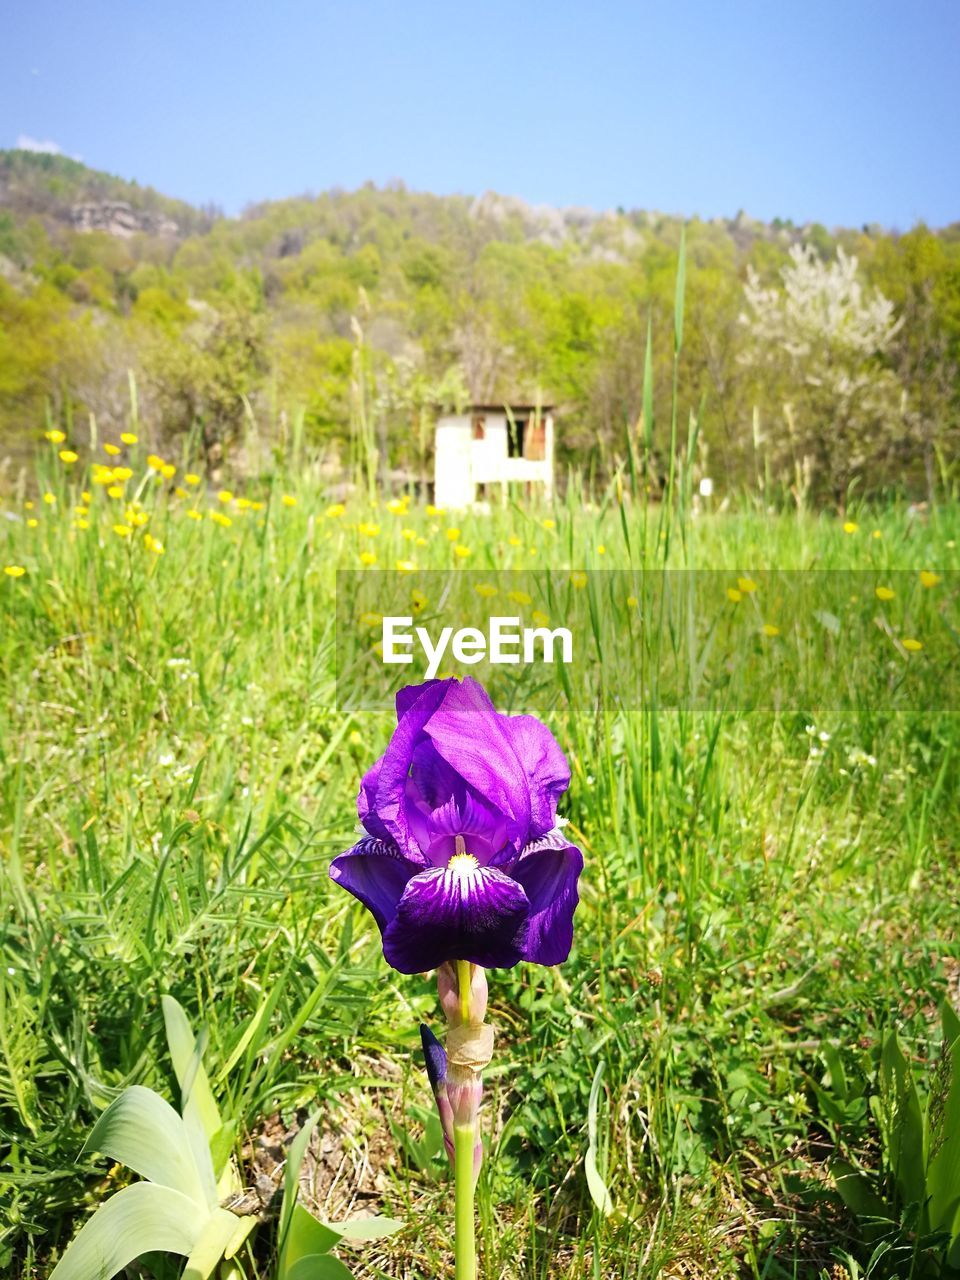 flower, growth, nature, beauty in nature, field, grass, day, green color, outdoors, plant, fragility, no people, purple, freshness, flower head, sunlight, tranquility, blooming, close-up, sky, crocus